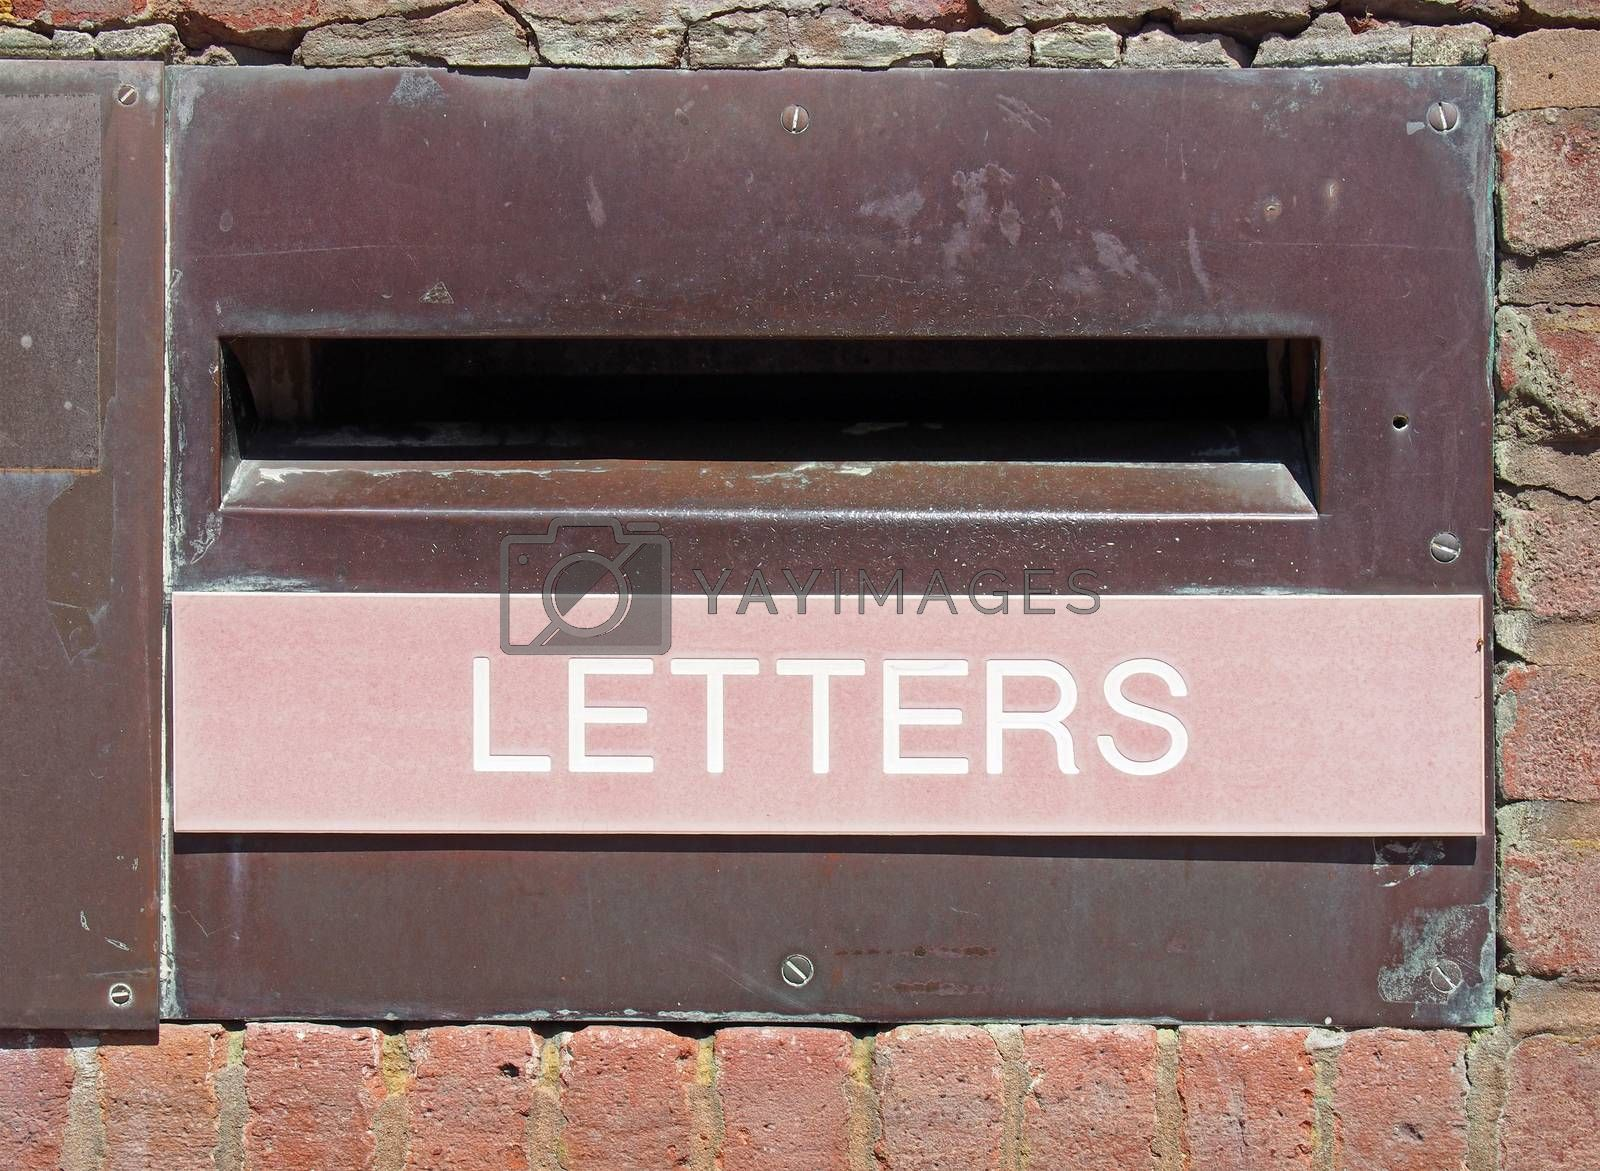 an old british postal mail box in a brick wall with rusted metal surround and the word letters on a faded red panel